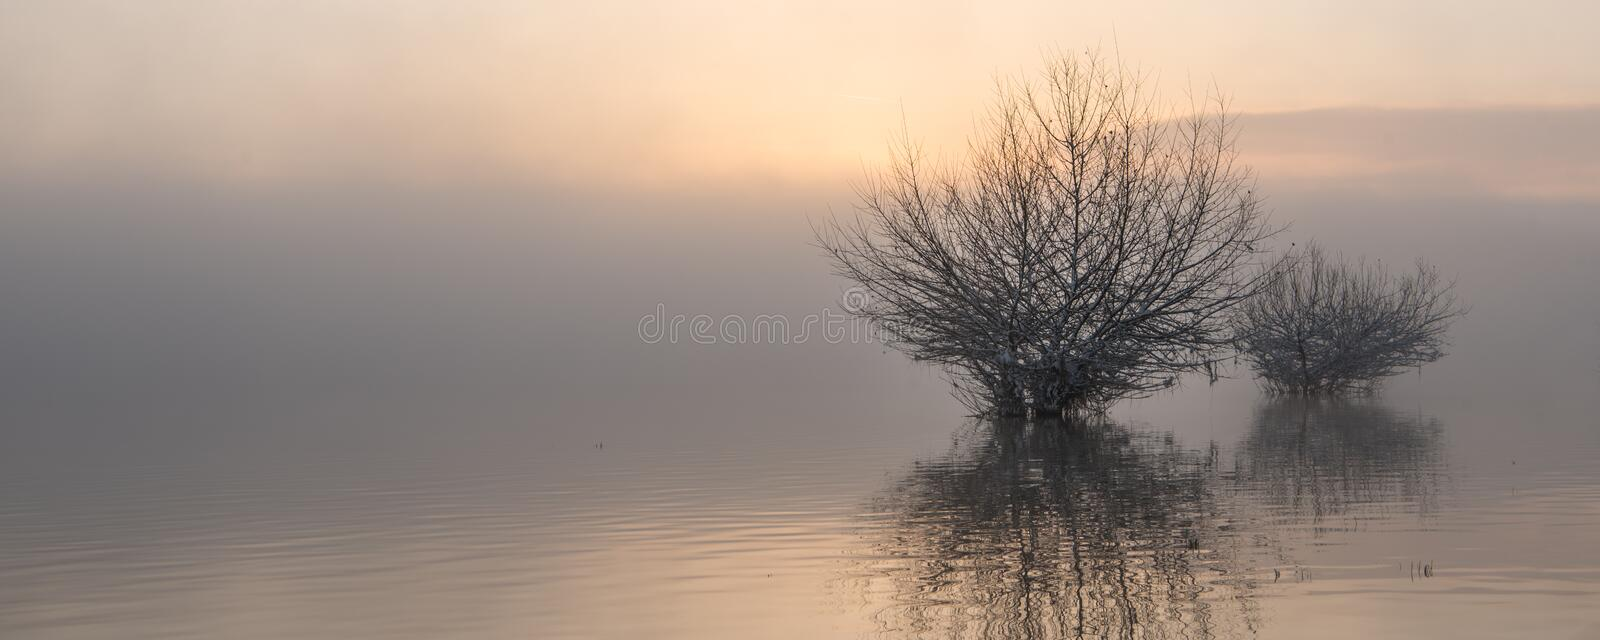 Sunrise at the lake in fog. Moody sunrise on the water in fog in autumn. trees reflect in the water stock image